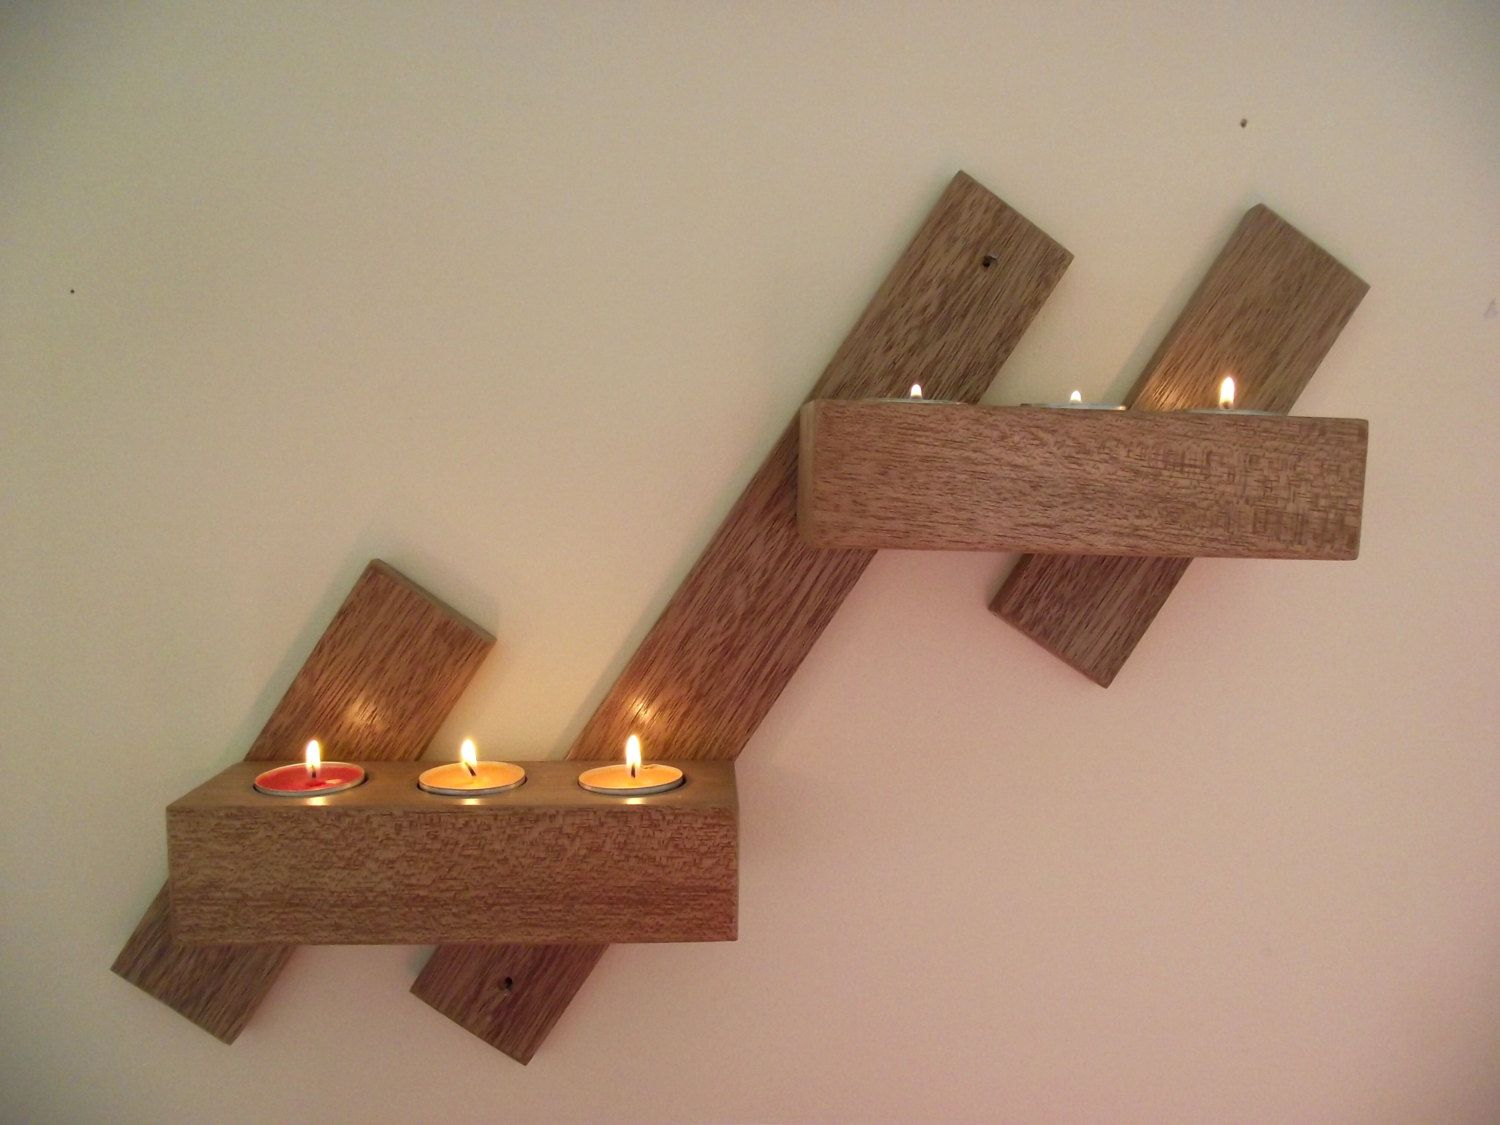 Wall Hanging Candle Holders wall hanging mahogany or oak candle holder,wall candle holders